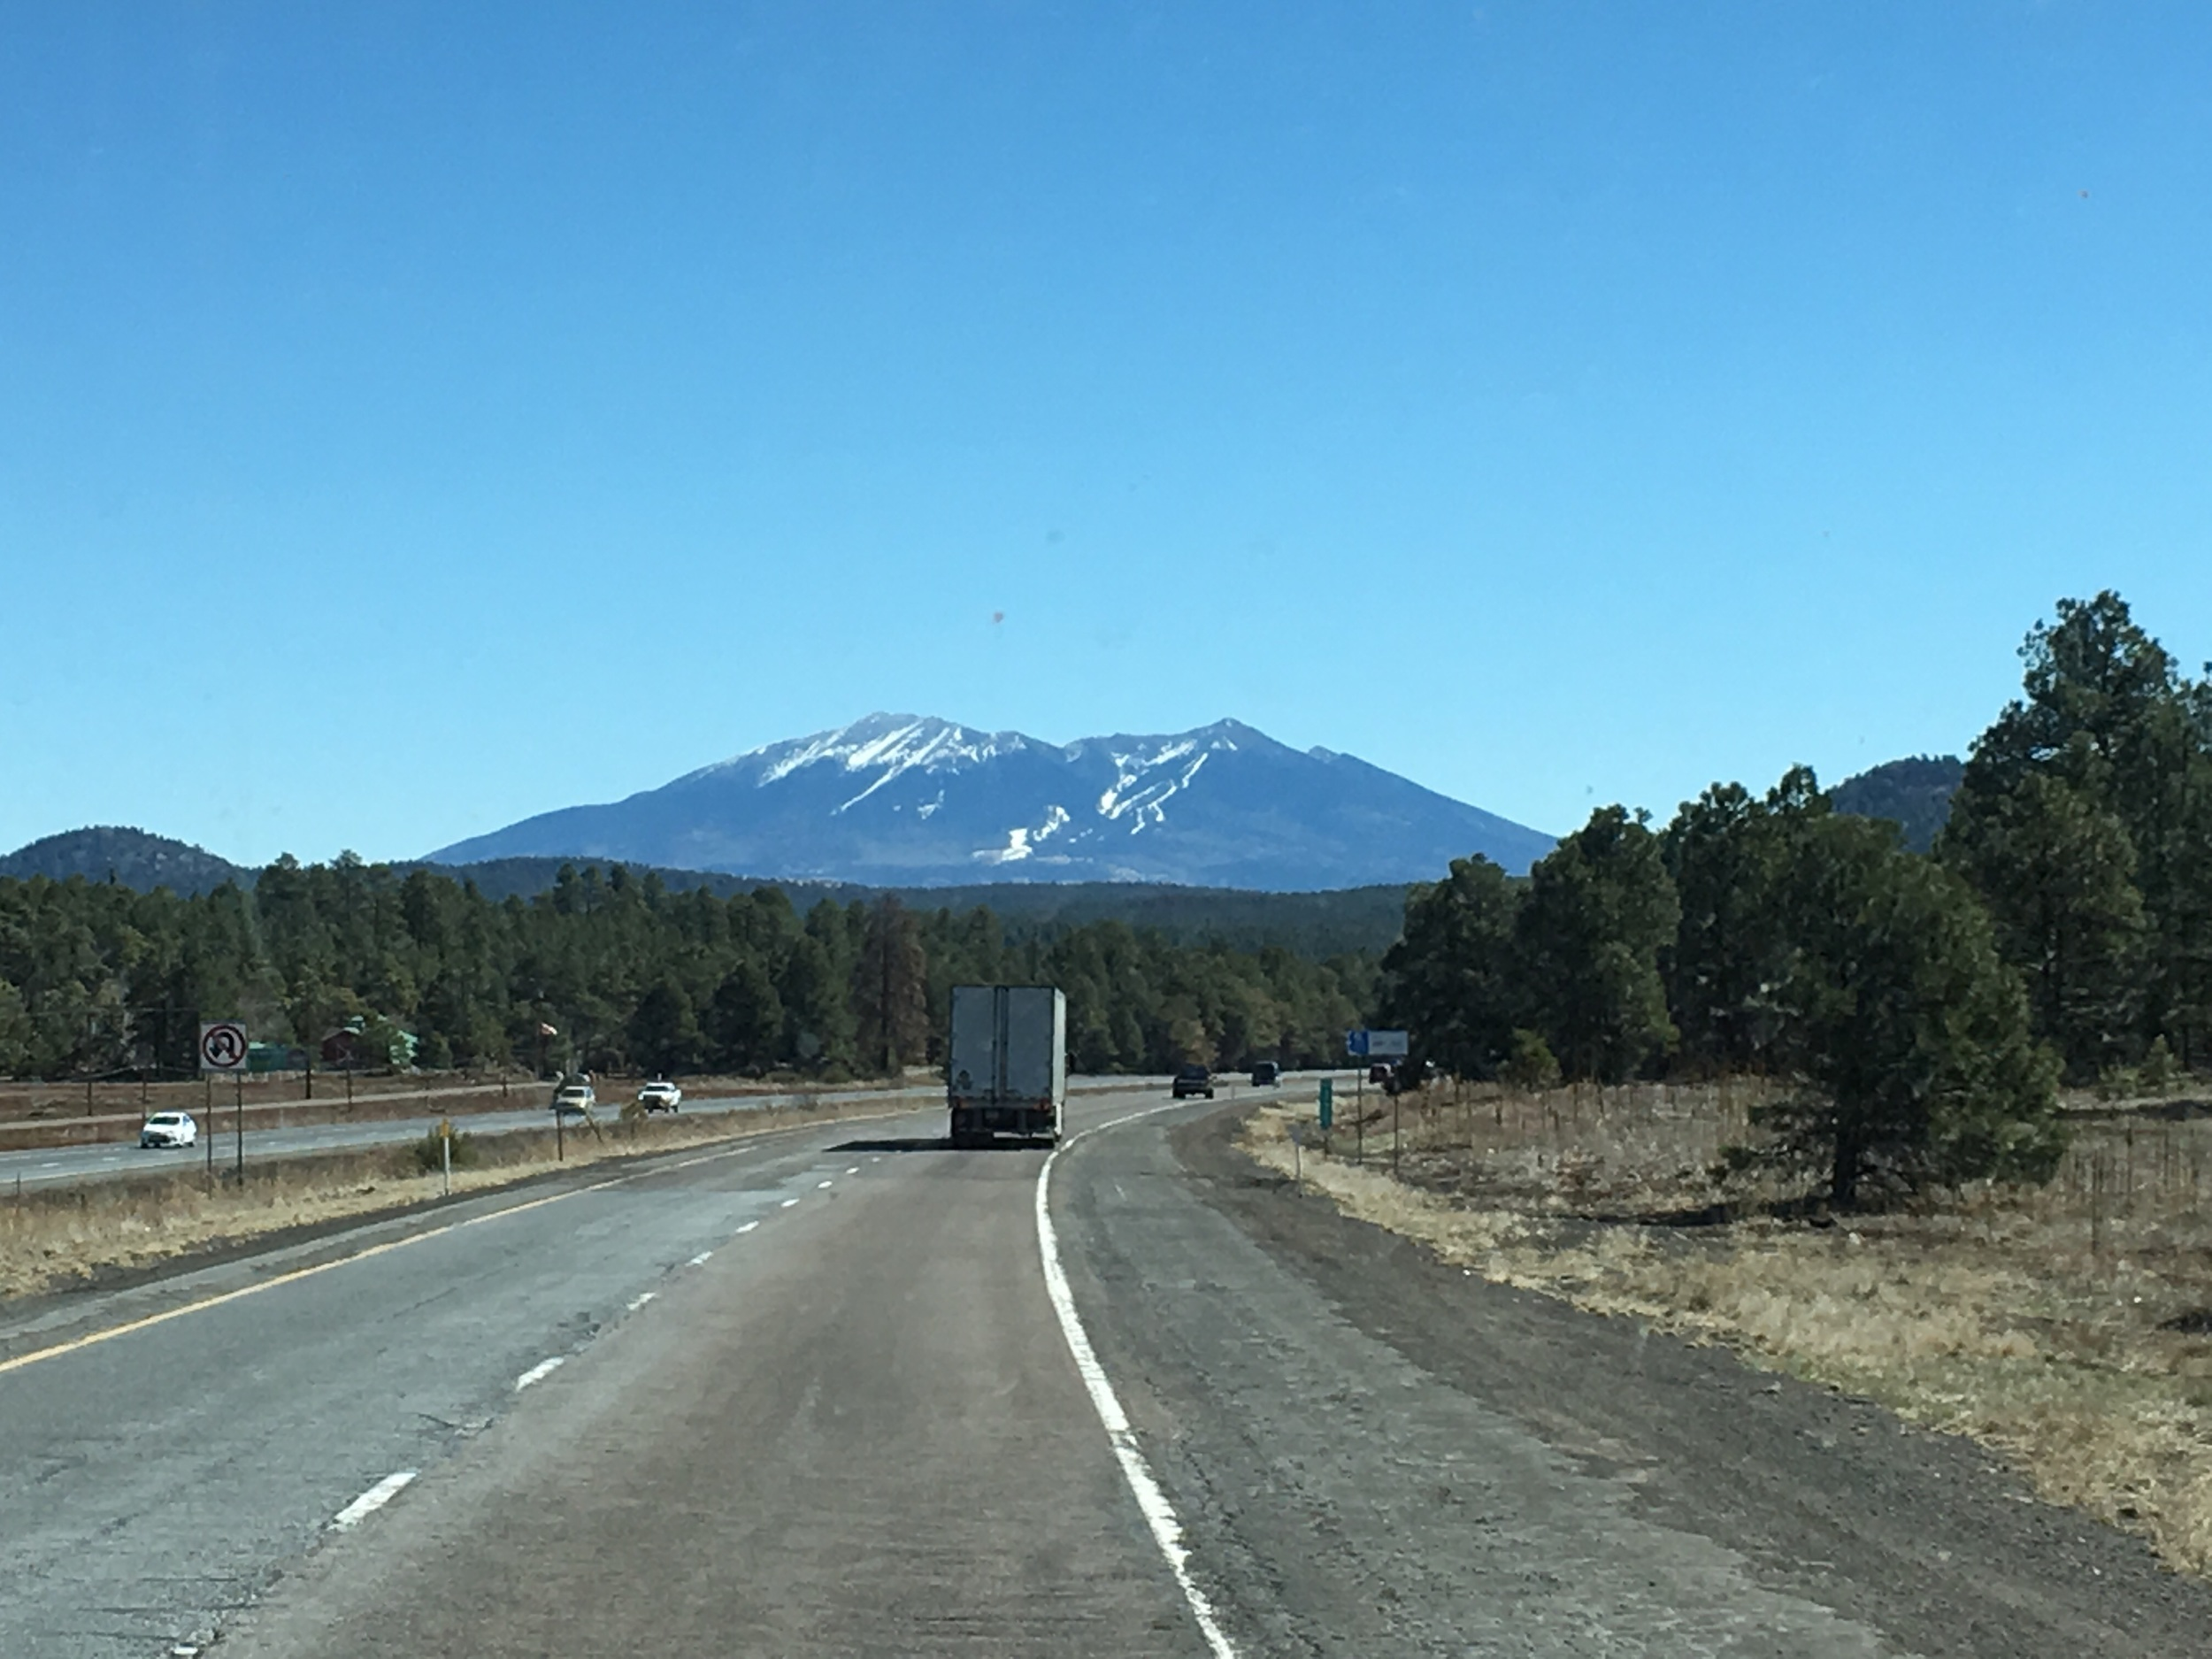 Approaching Flagstaff, AZ. Notice the ski trails in the distance.